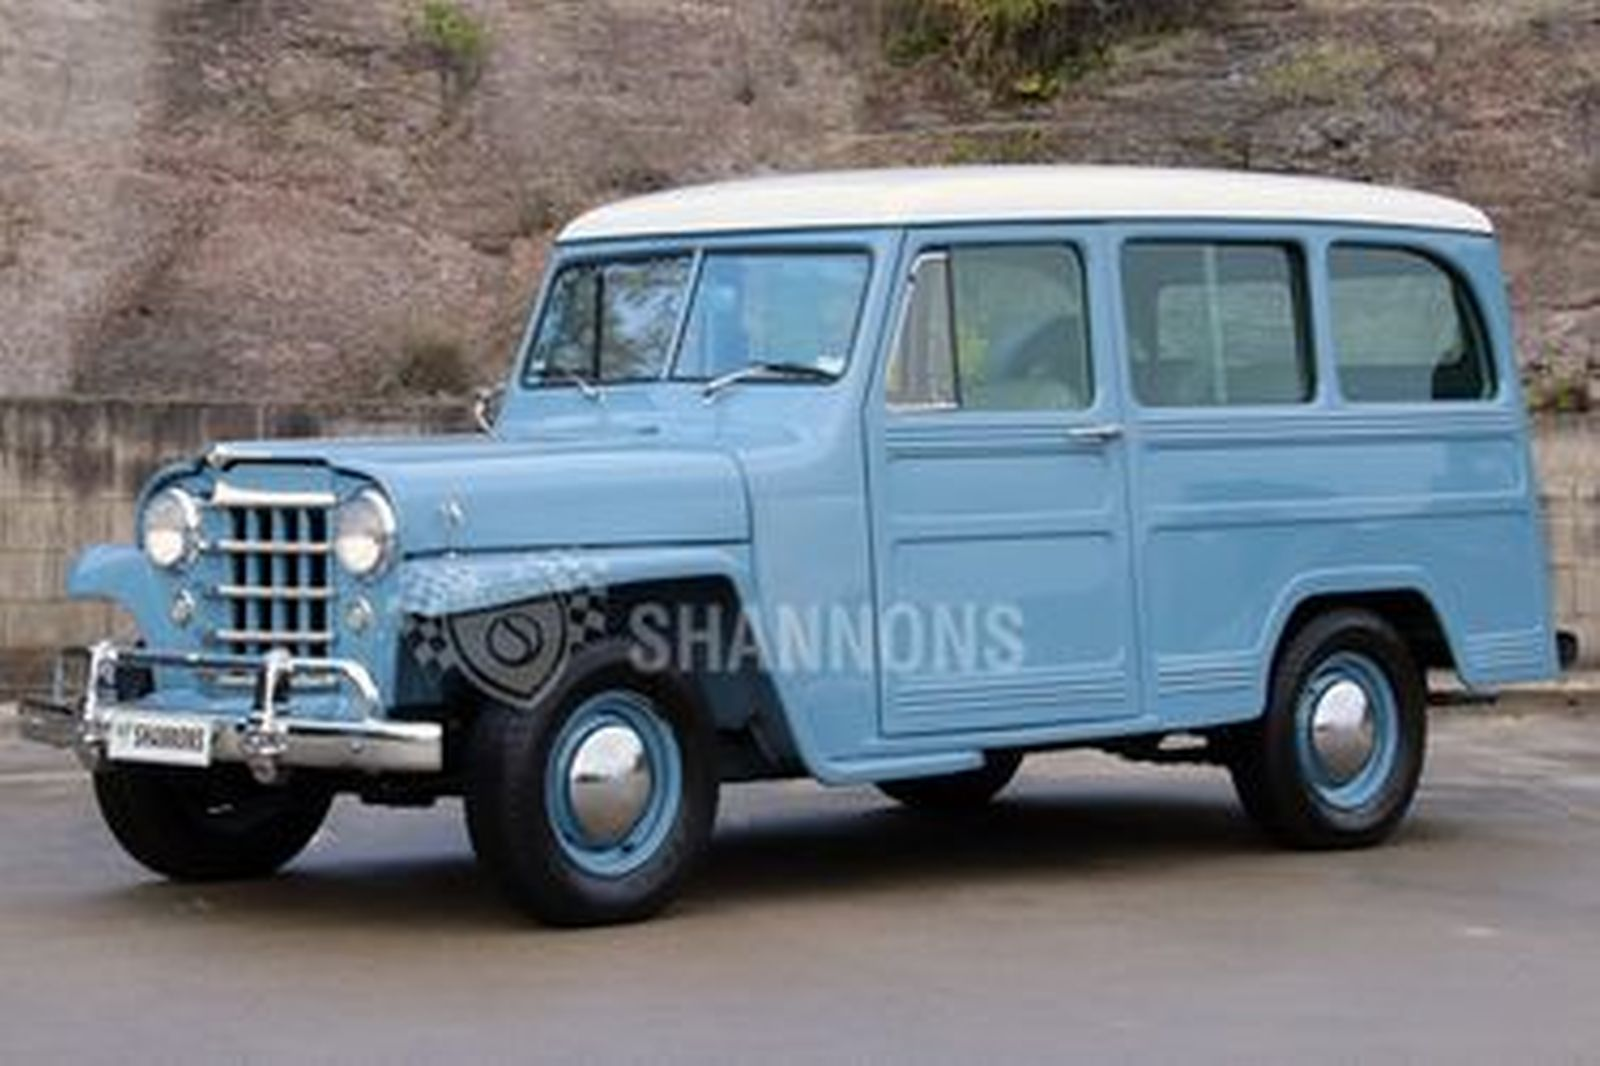 Willys Overland 4x2 Station Wagon Rhd Auctions Lot 21 Shannons 1950 Jeep